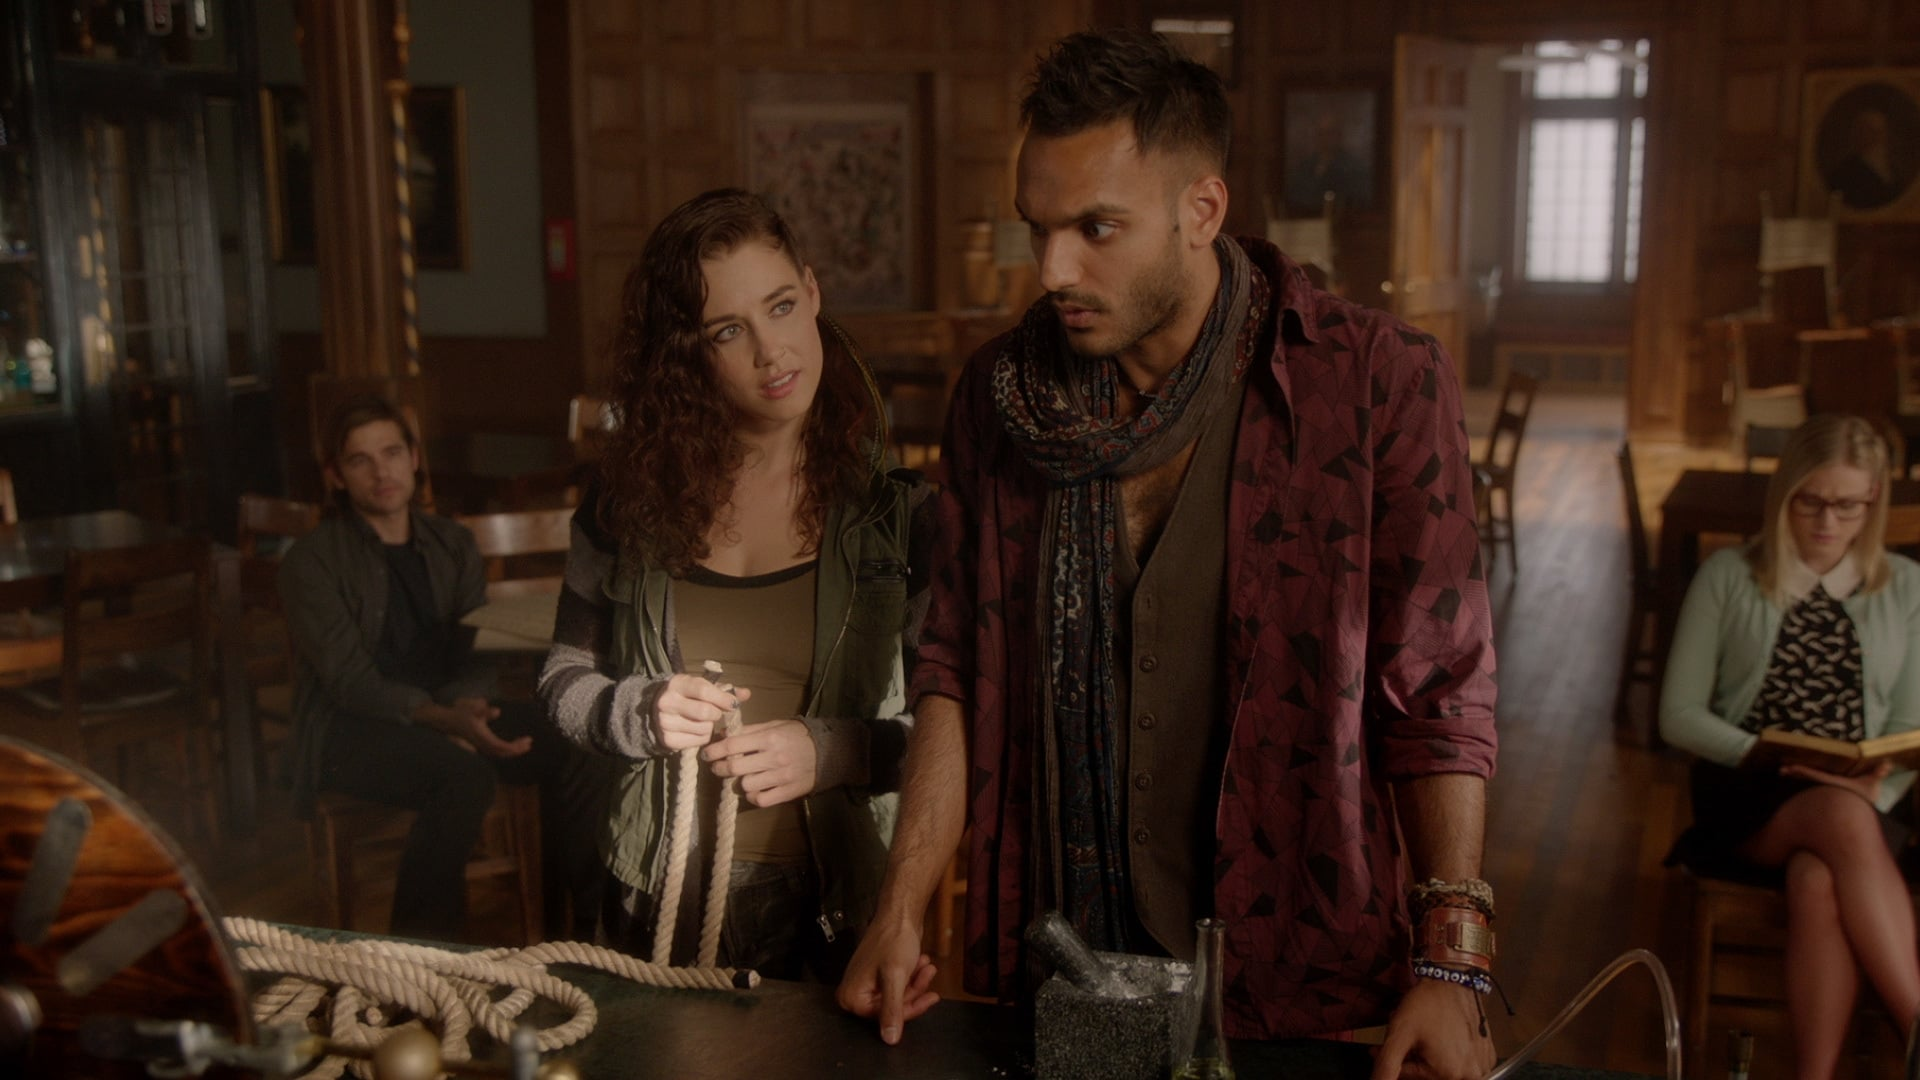 Watch The Magicians: 1x6 Episode Online For Free - Movie4u